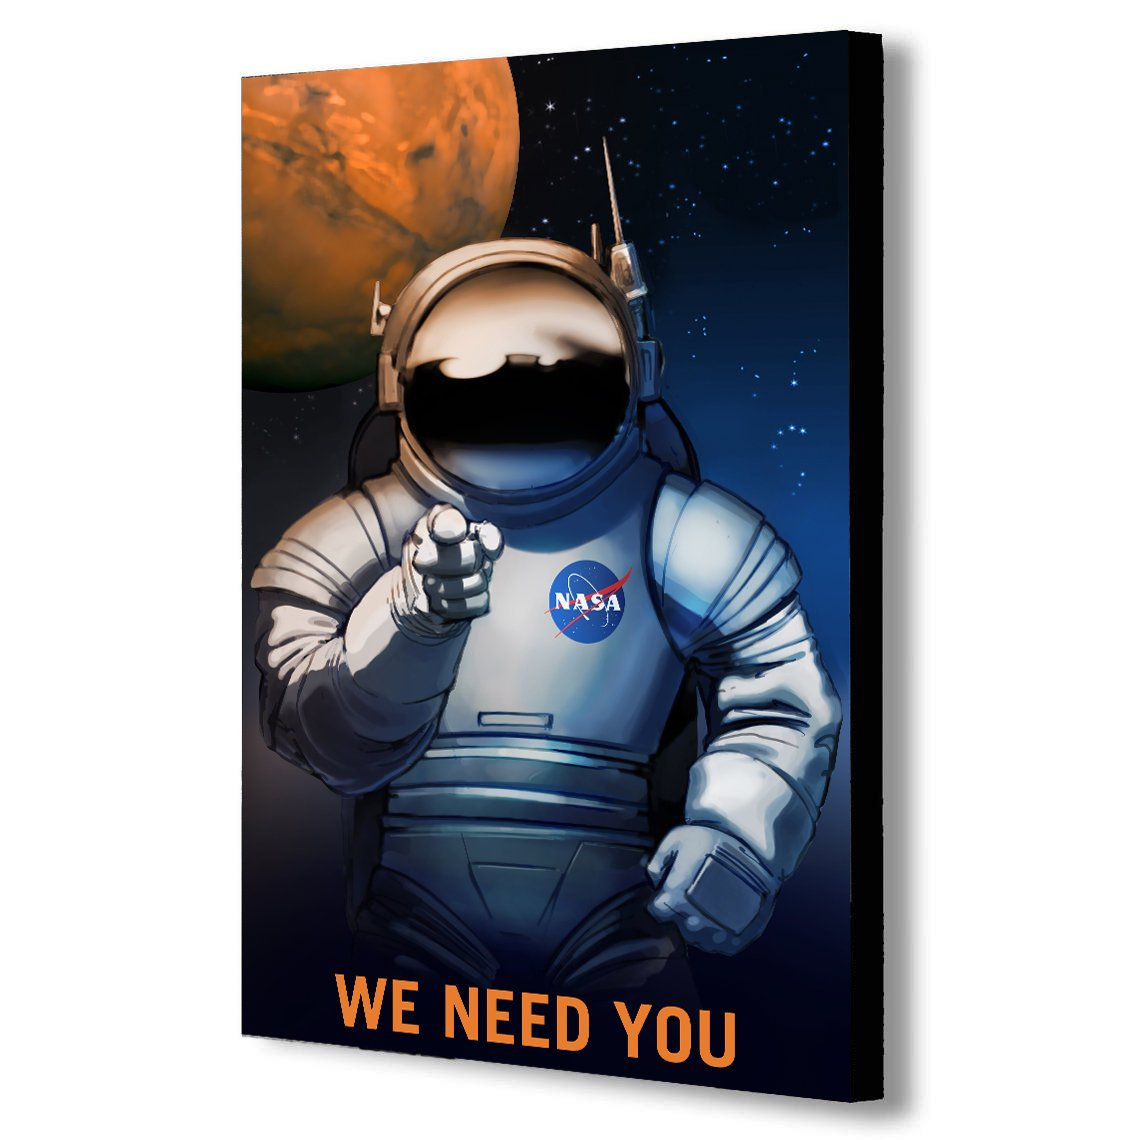 NASA We Need You - Recruitment Canvas Wall Art Framed Print -Various Sizes